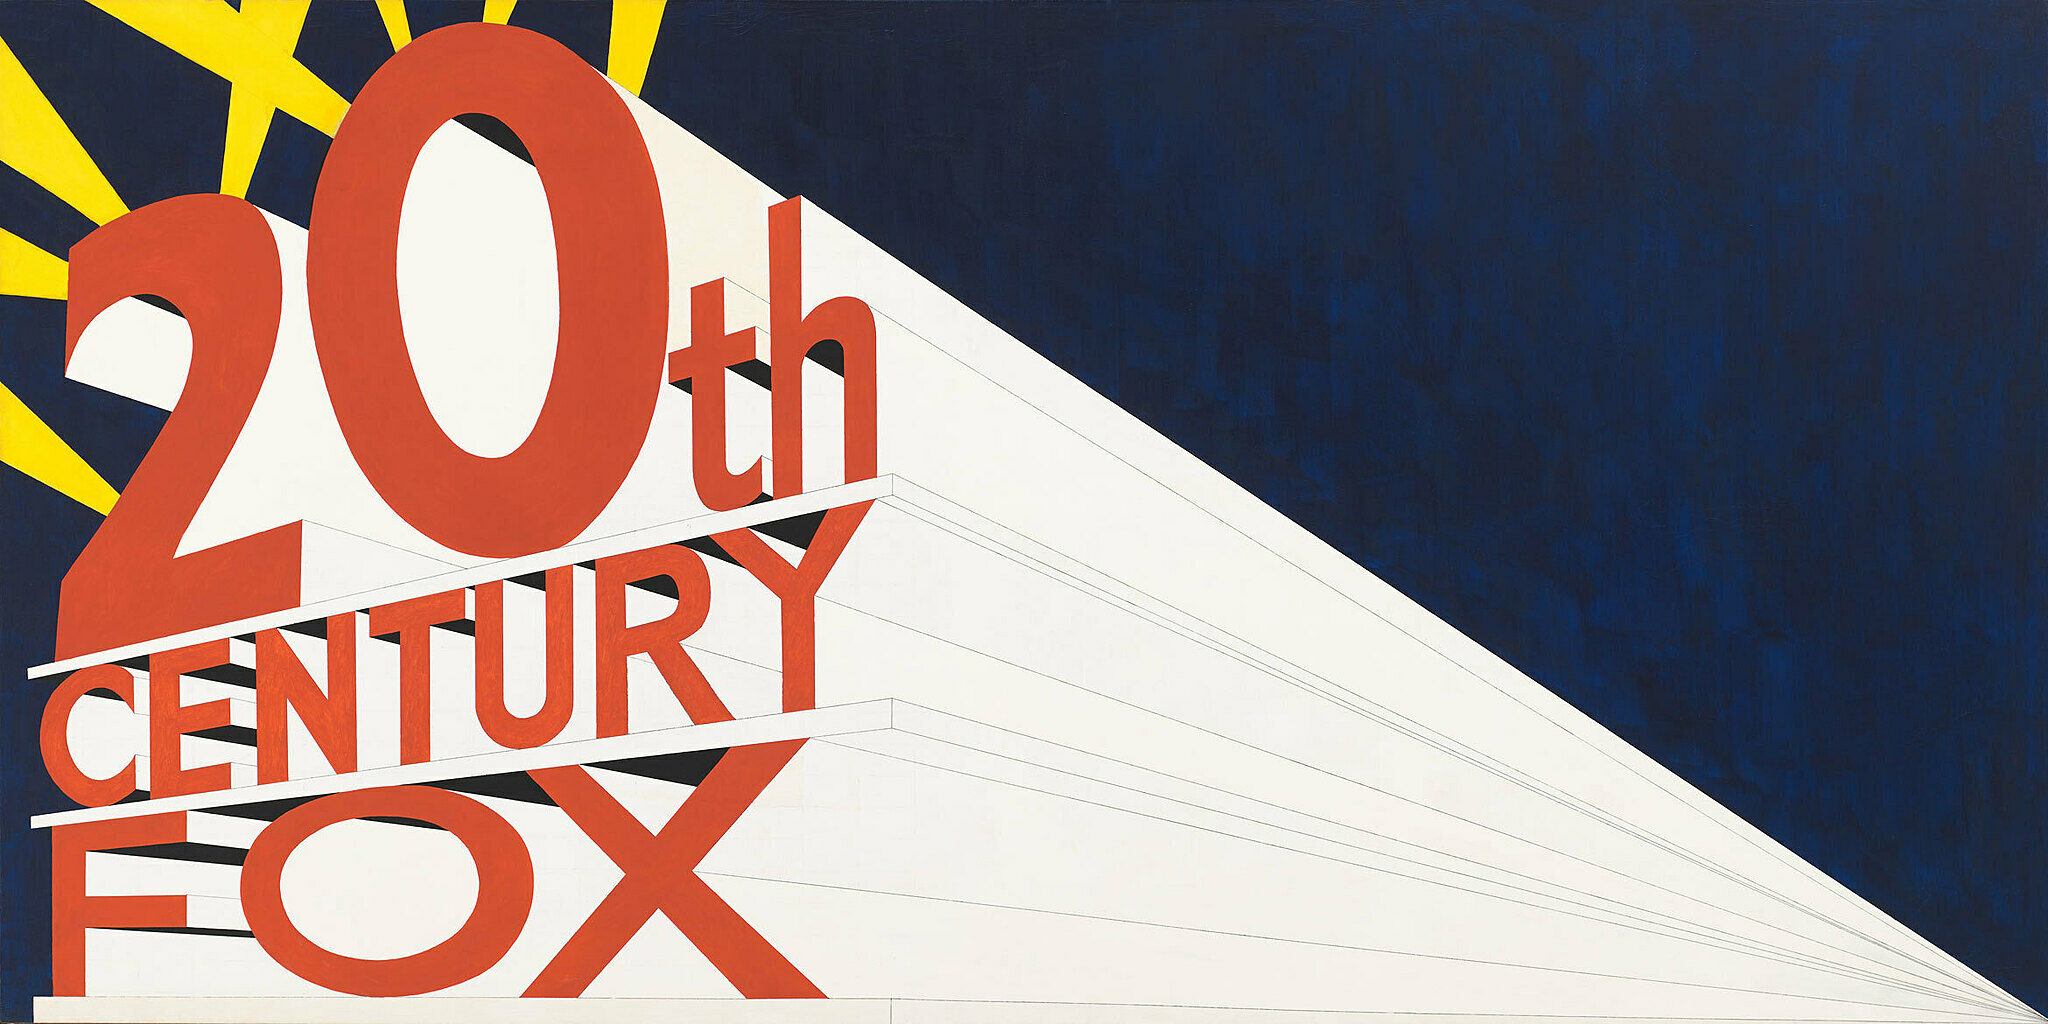 """The words """"20th Century Fox"""" appear on the left in red letters, with lines coming together in the lower right corner, against a navy background with yellow rays emanating out from behind """"20th"""""""